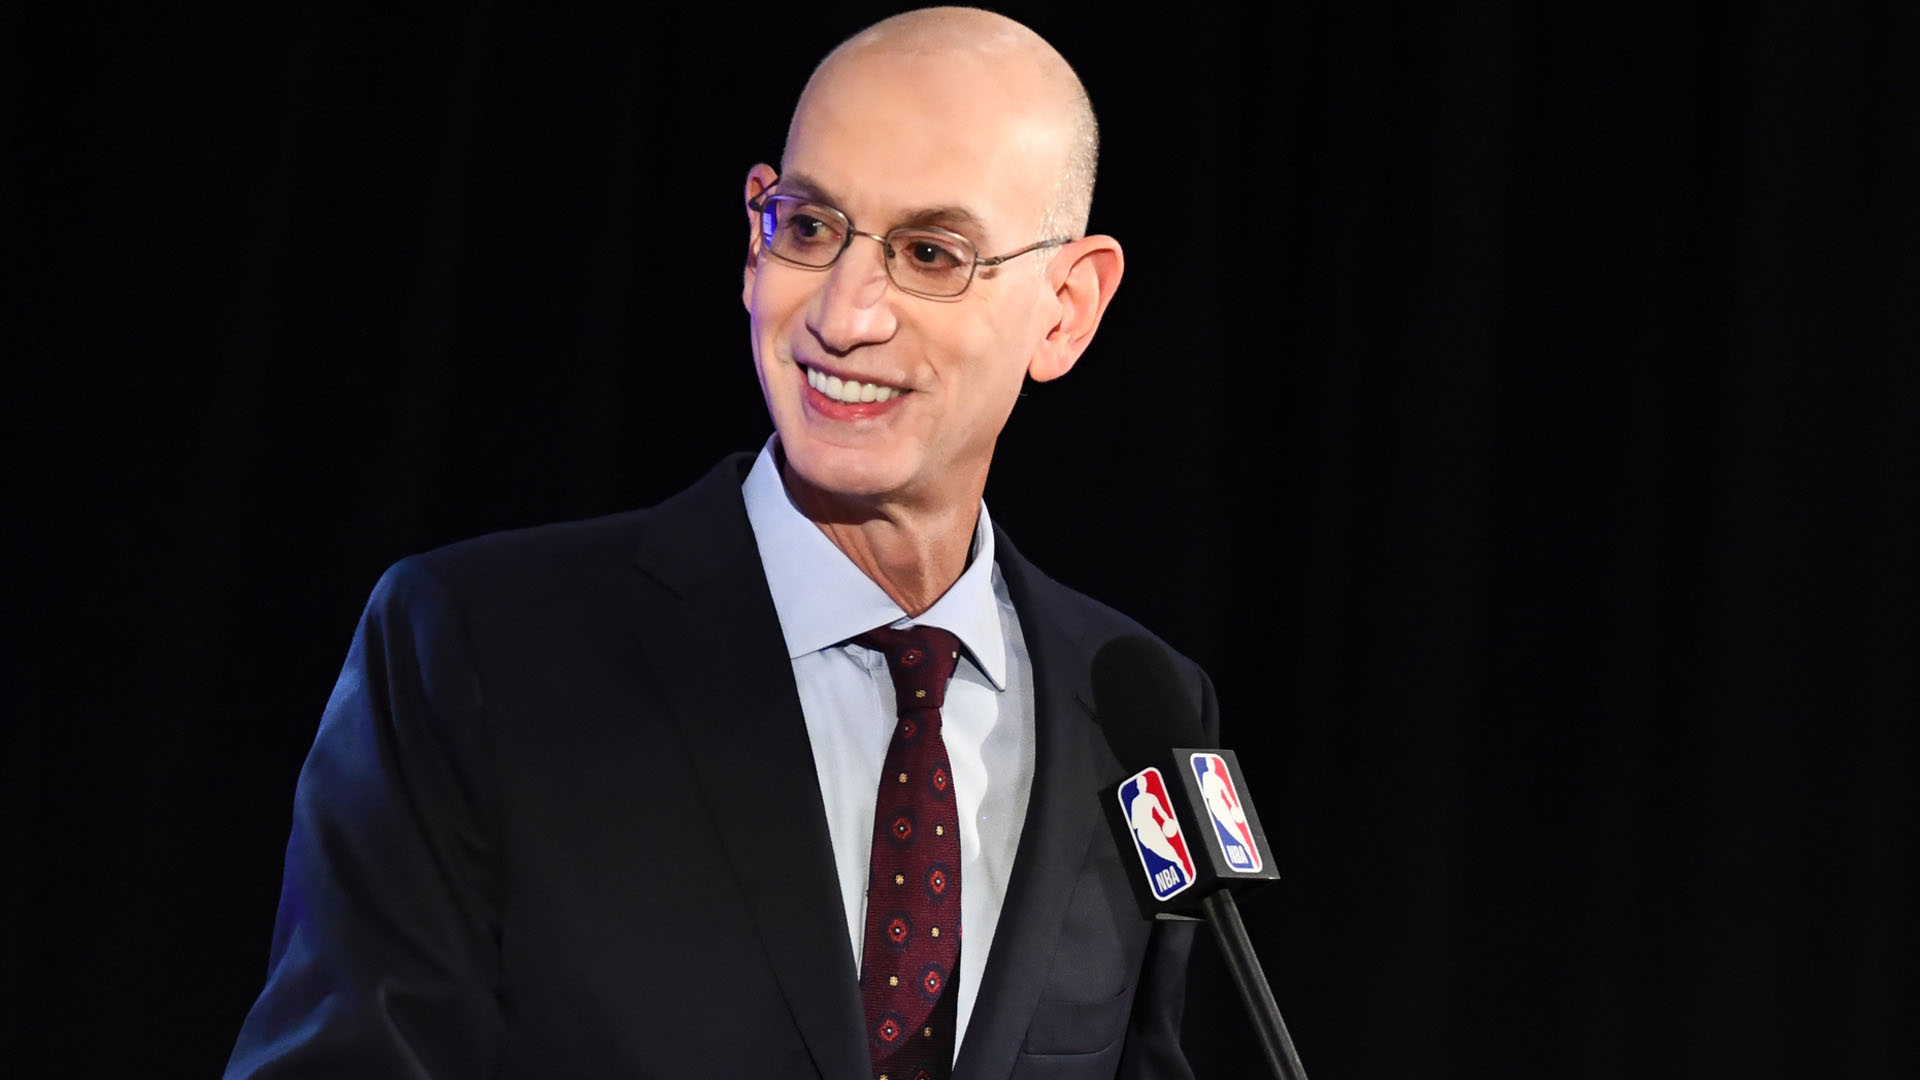 Adam Silver addresses upcoming 2021-22 season, comments on Kyrie Irving's vaccination status